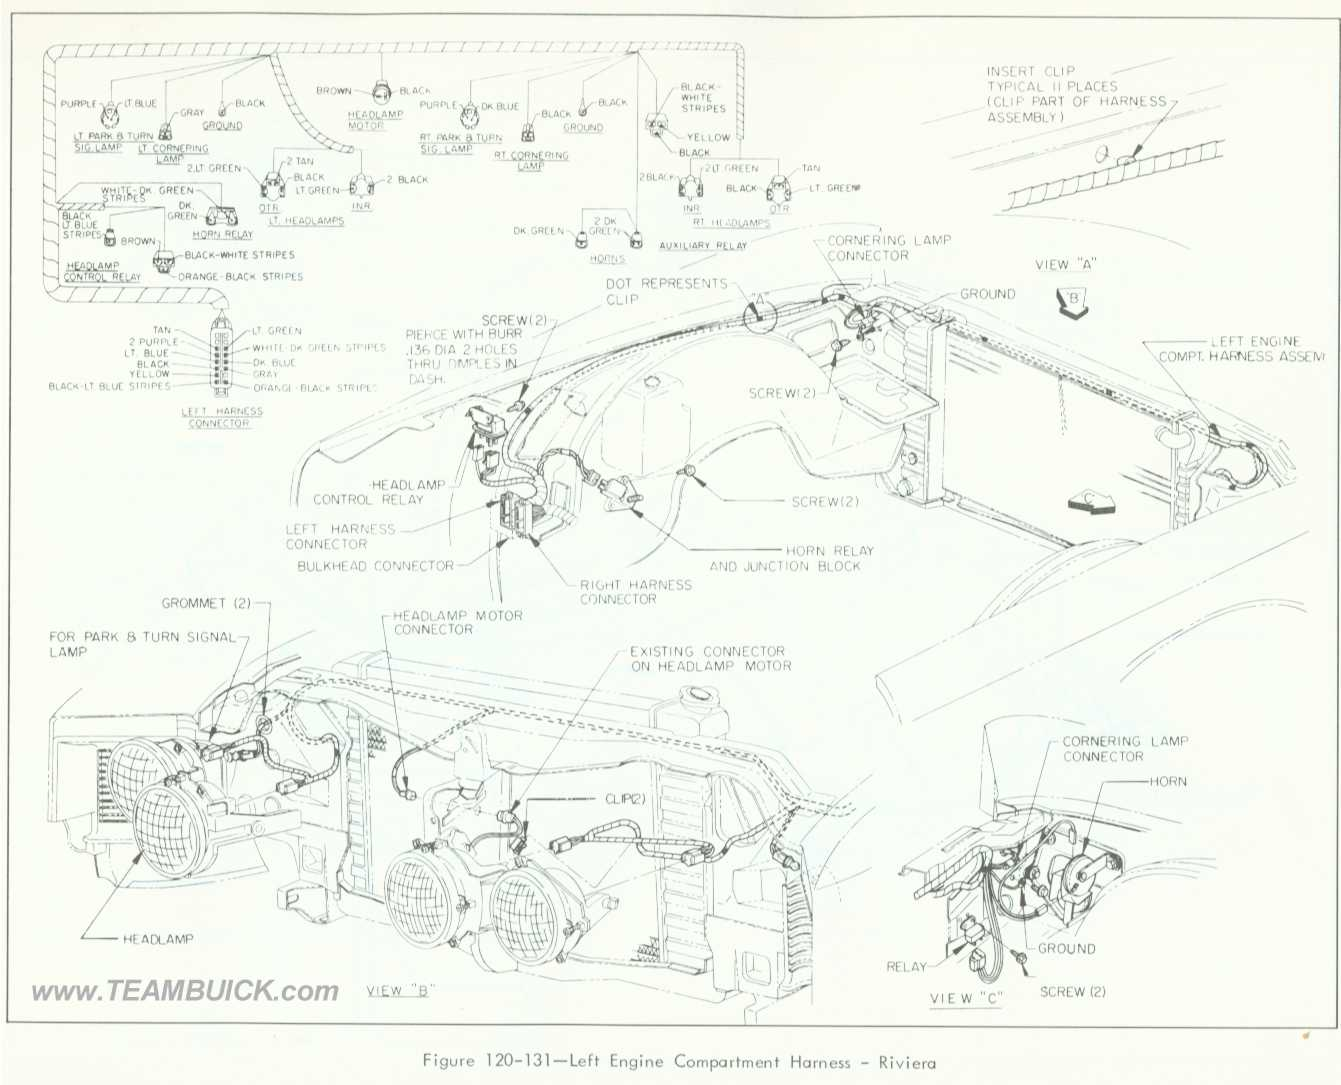 hight resolution of 1996 buick riviera engine diagram wiring diagrams free download circuit construction kit free download free circuit